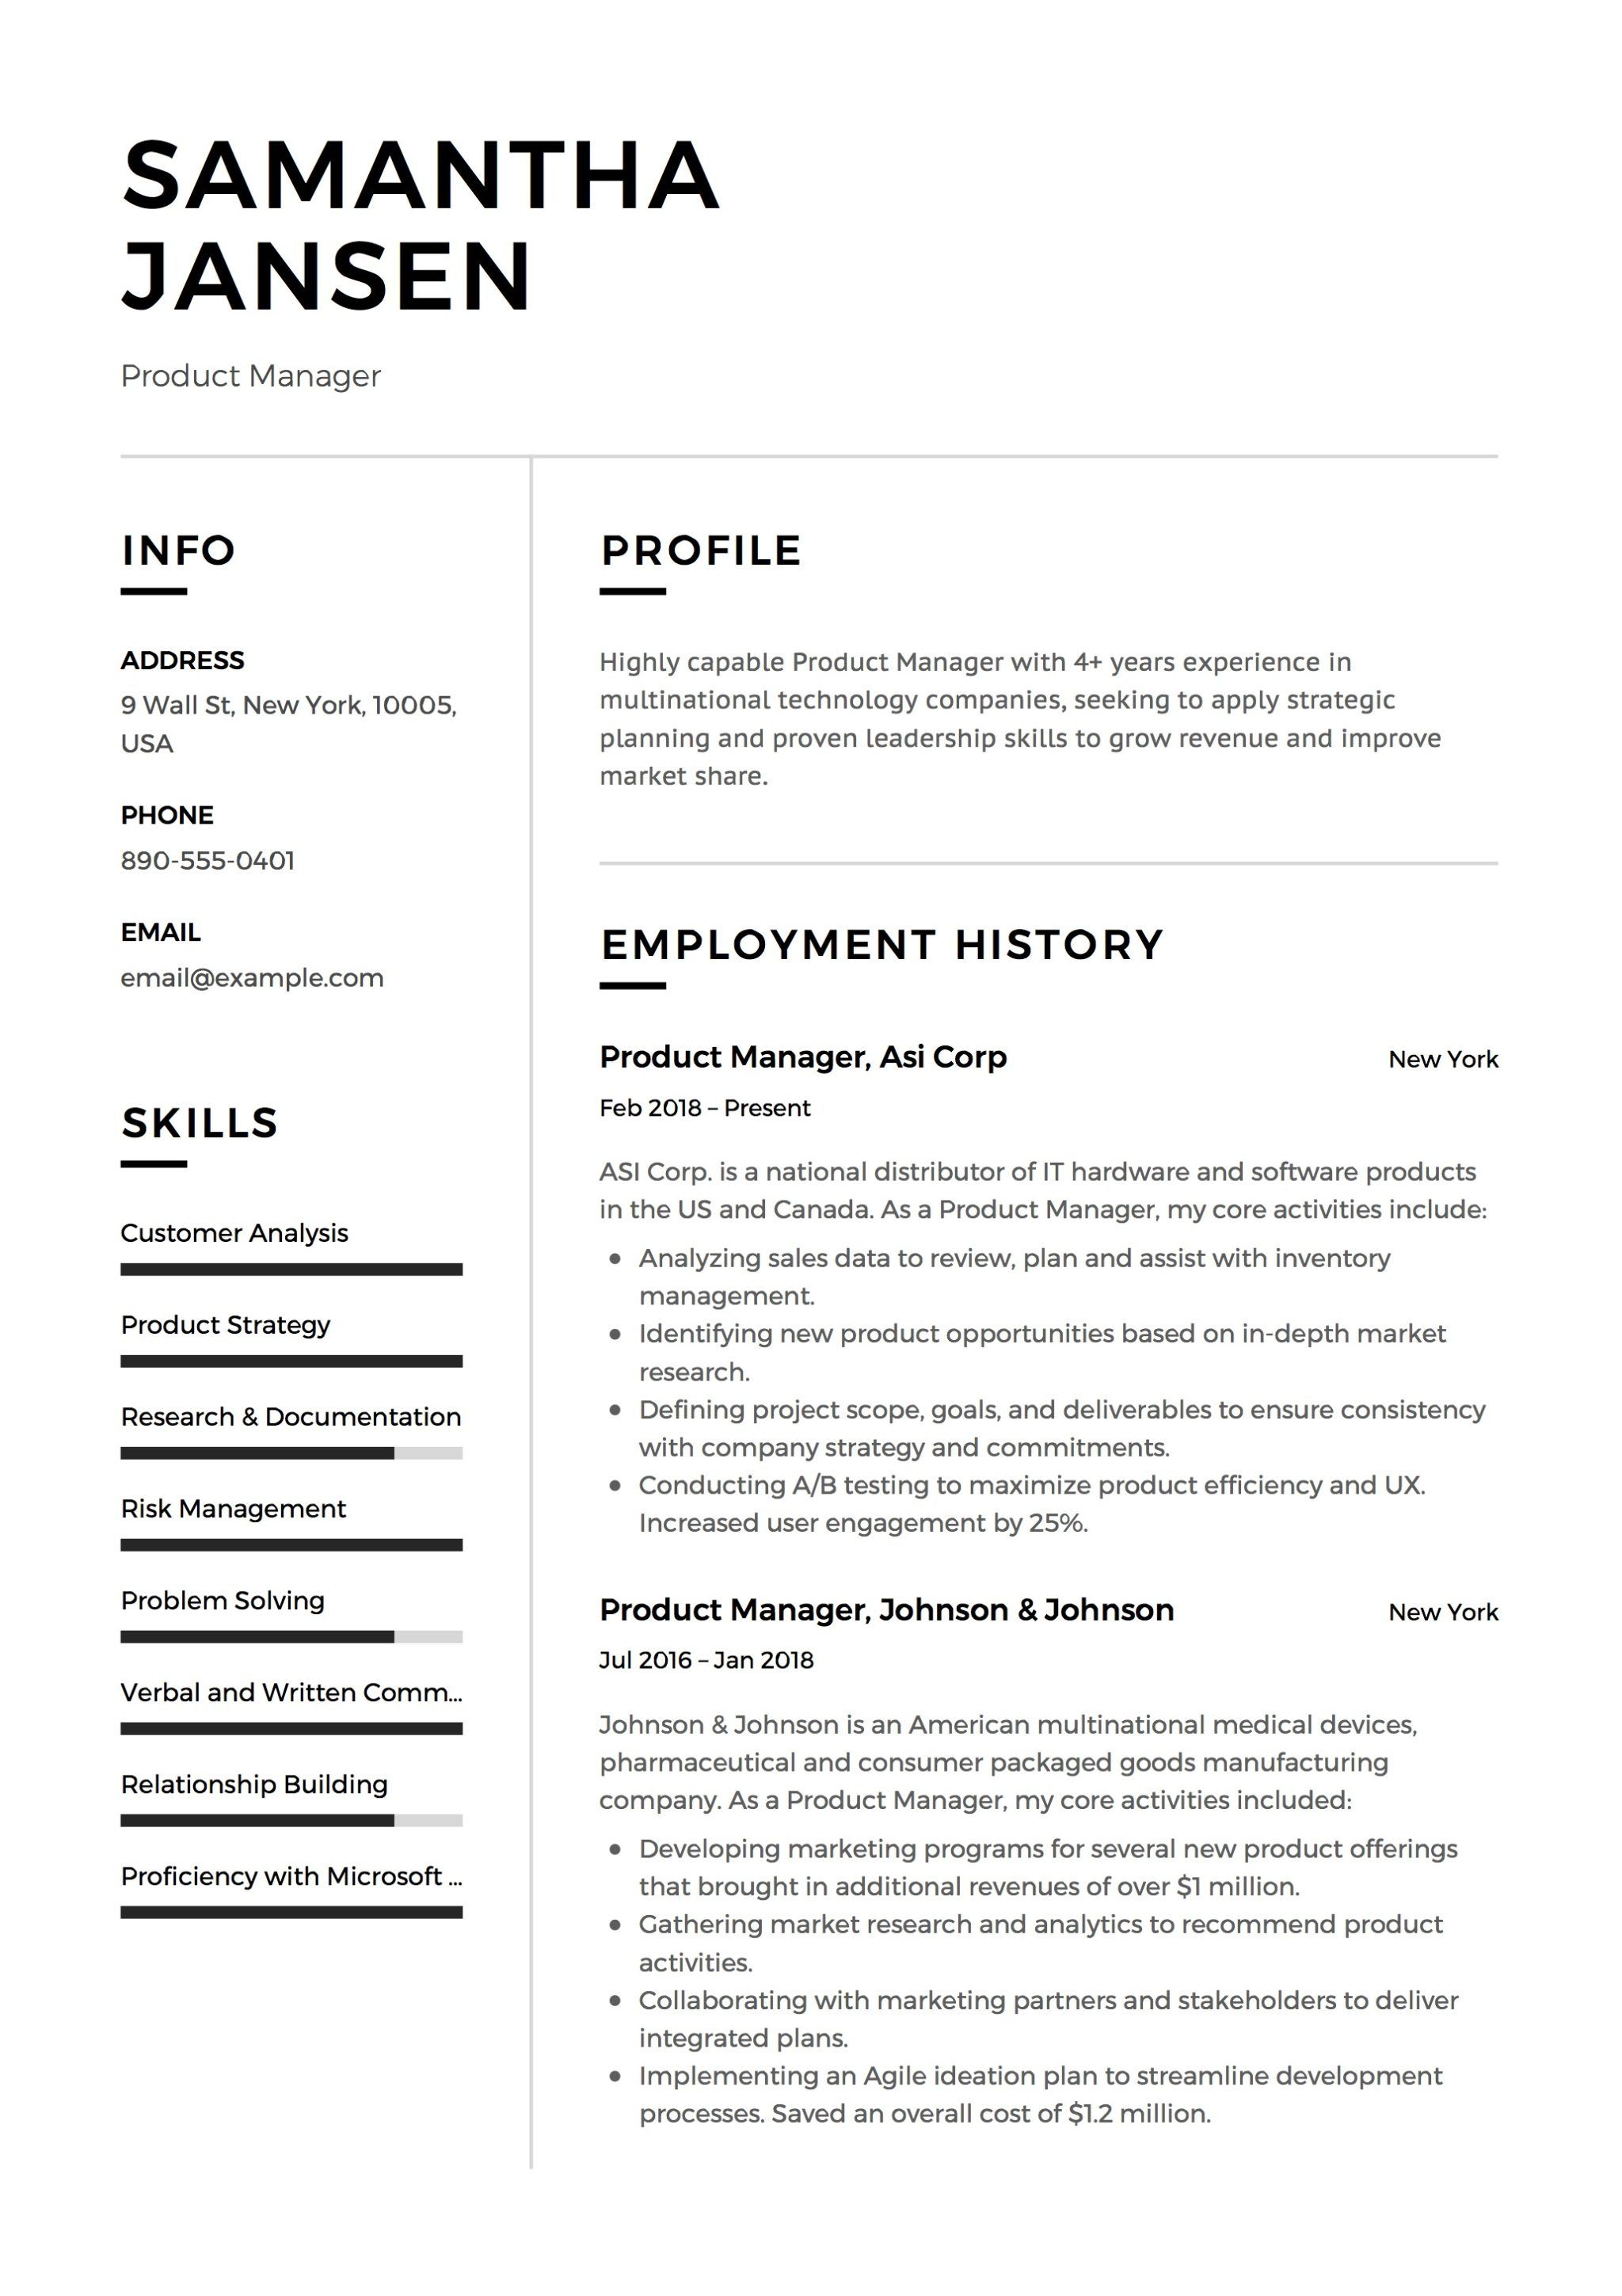 12 product manager resume samples 2018 free downloads brief summary for examples sample cv master scholarship pdf quality control engineer